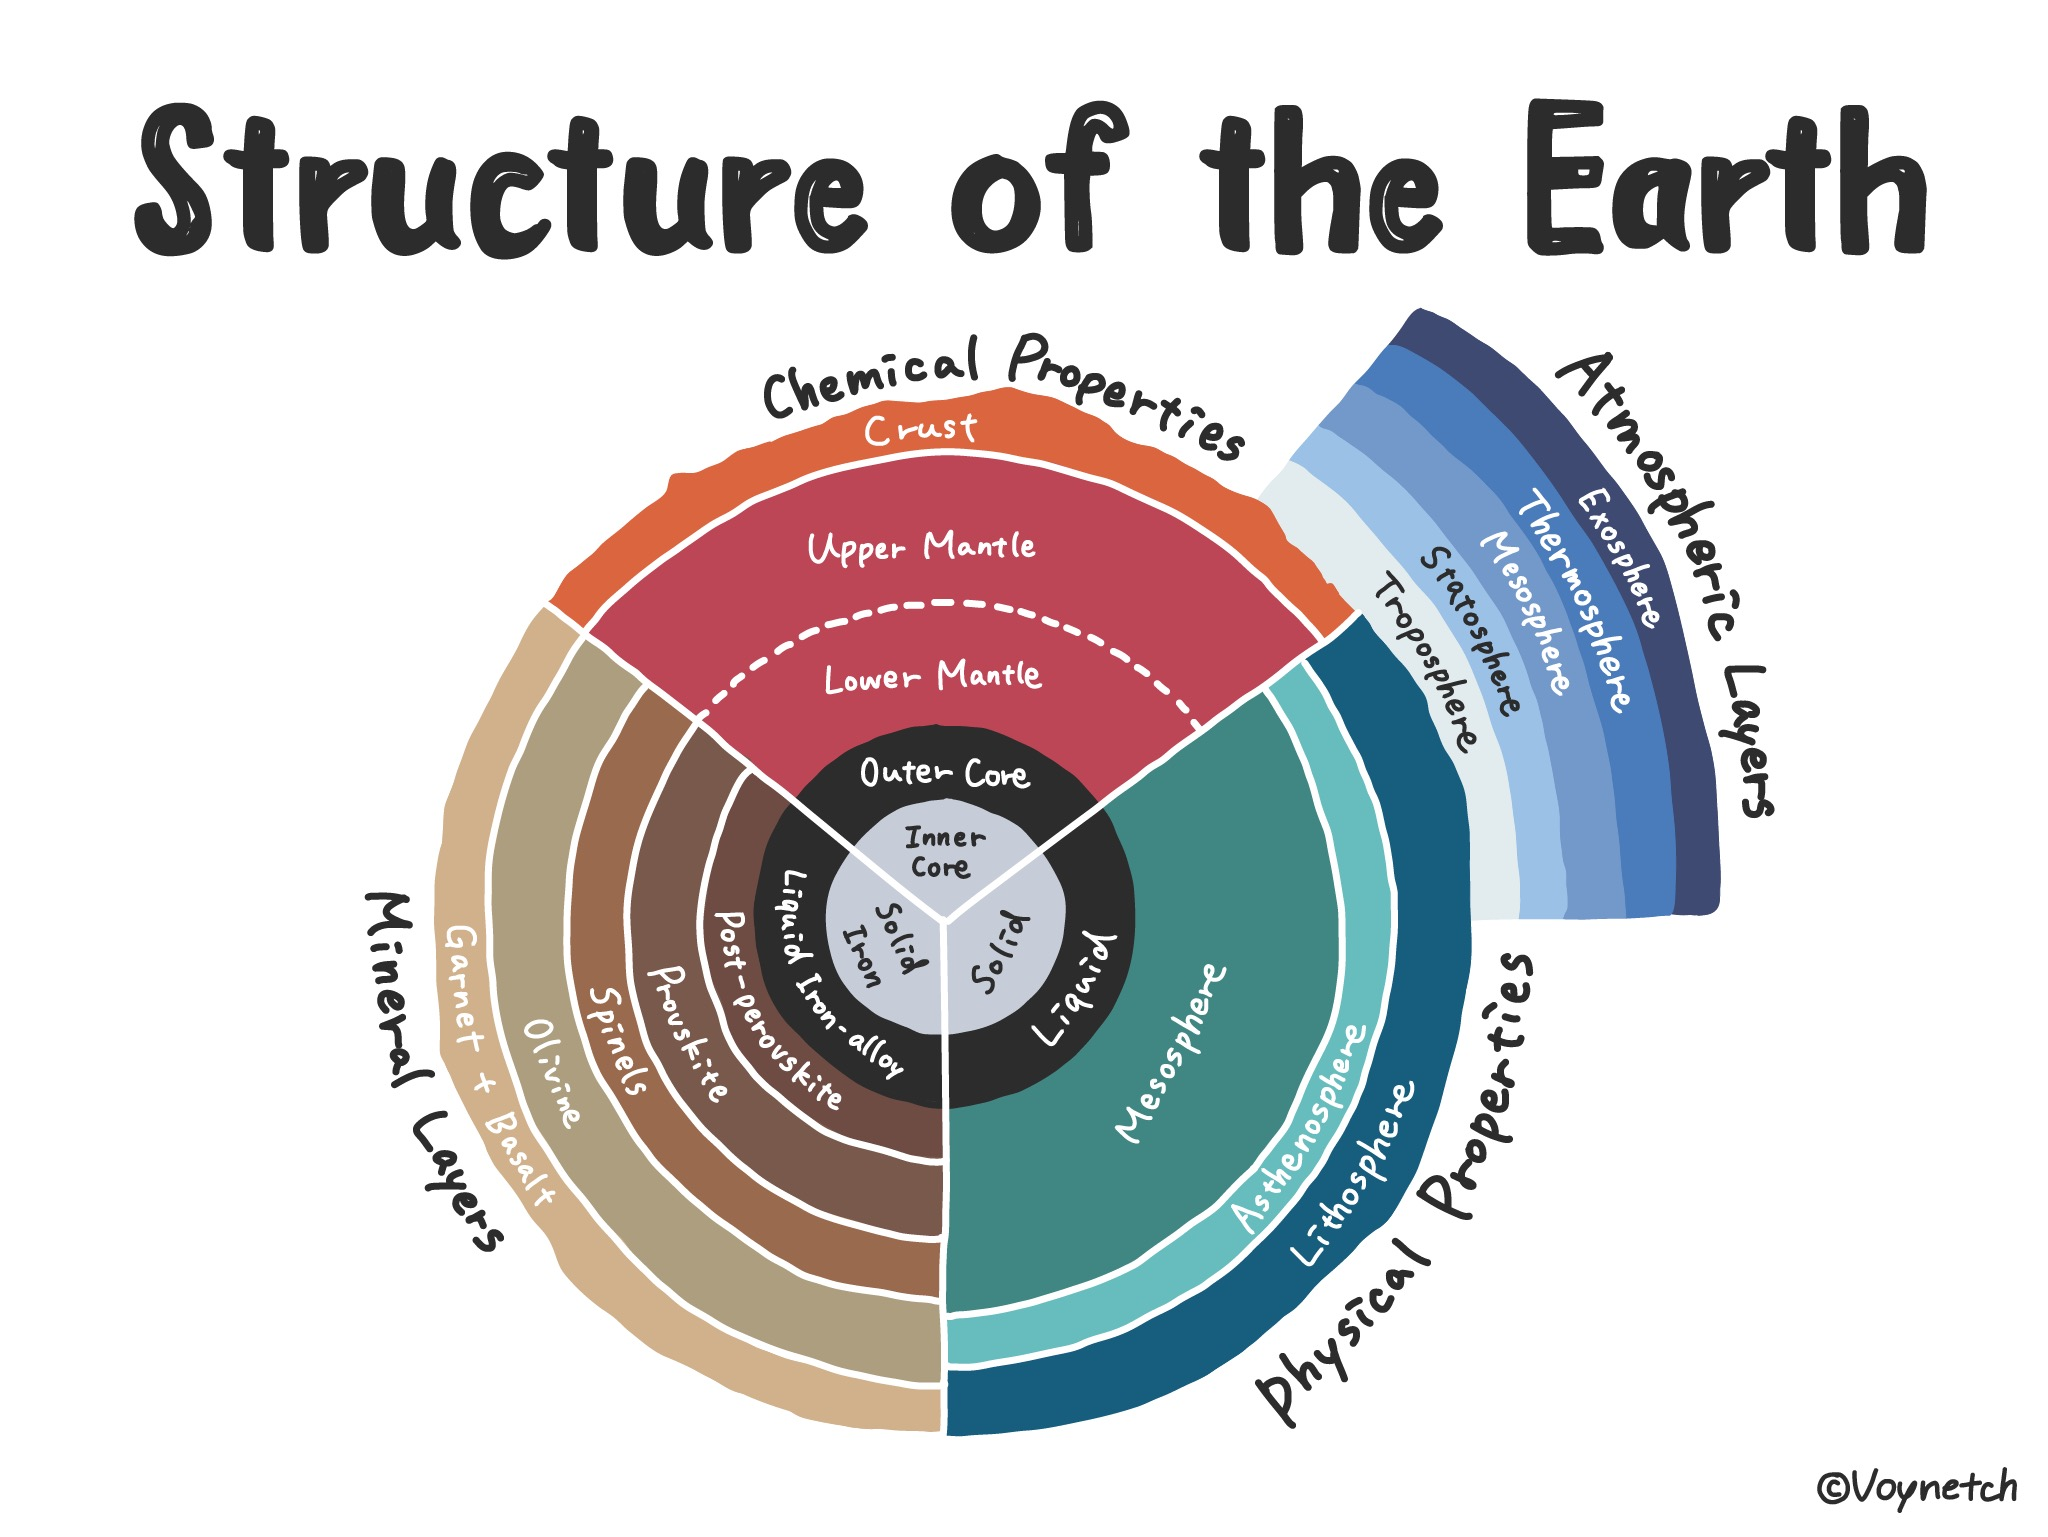 Structure of the Earth Image (1/1)